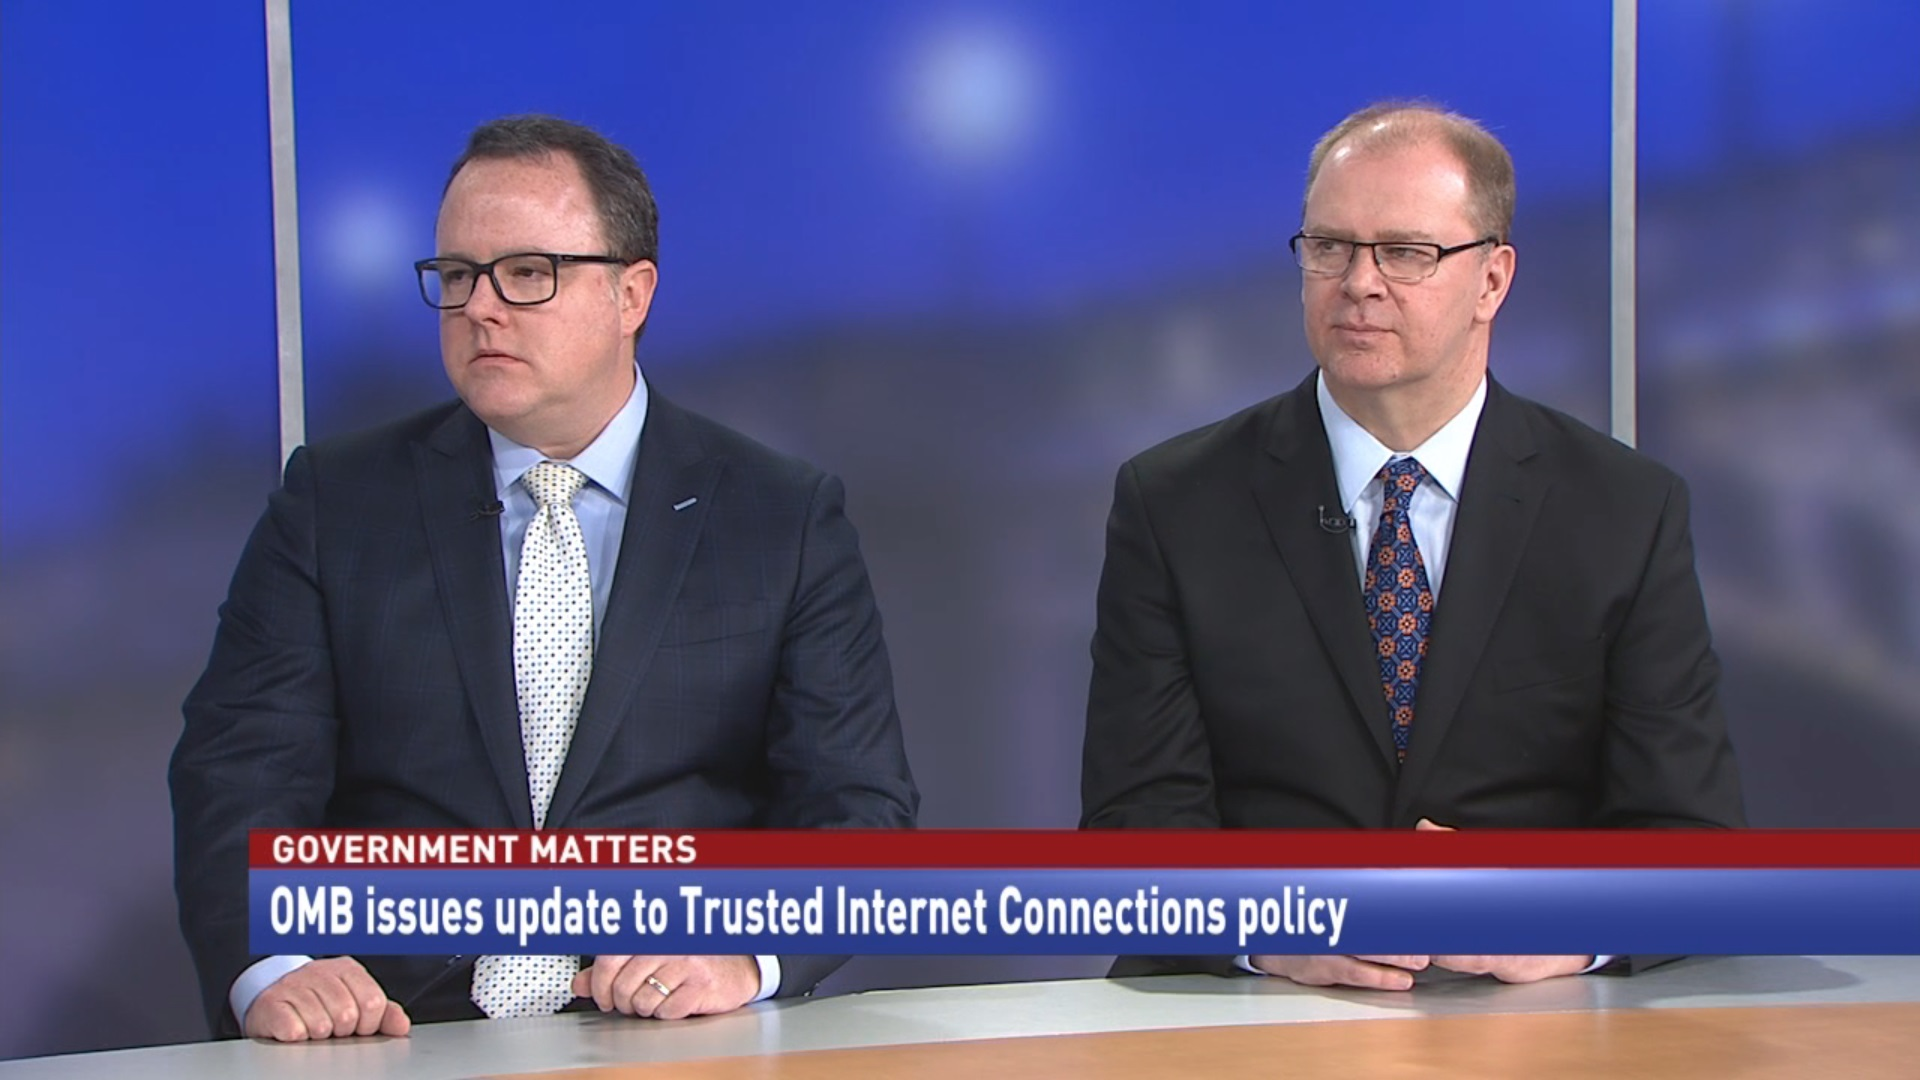 OMB issues update to Trusted Internet Connections policy